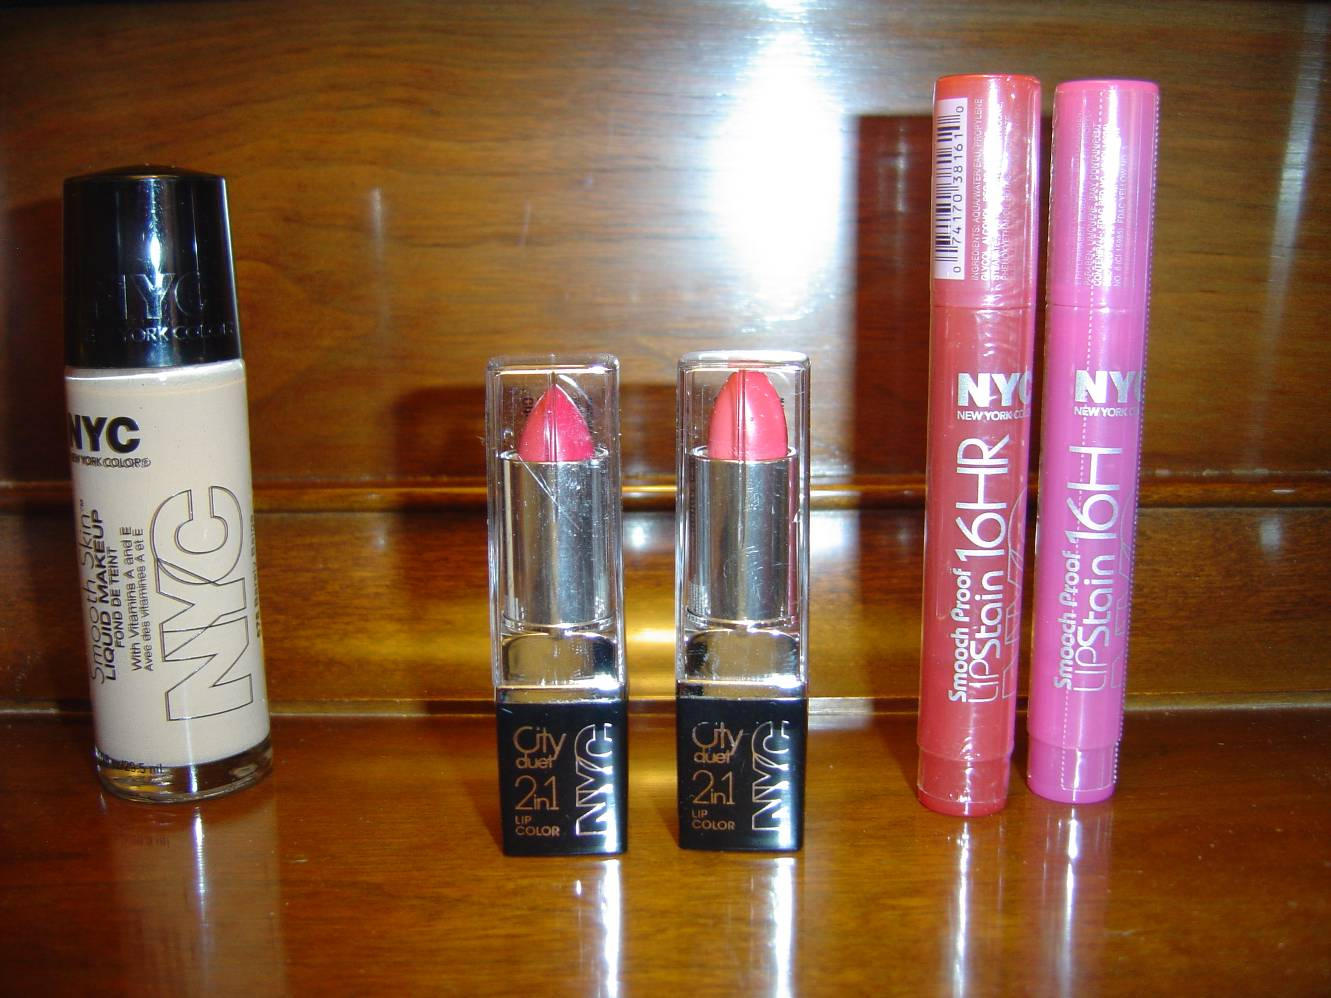 NYC New York Color Cosmetics group.jpeg